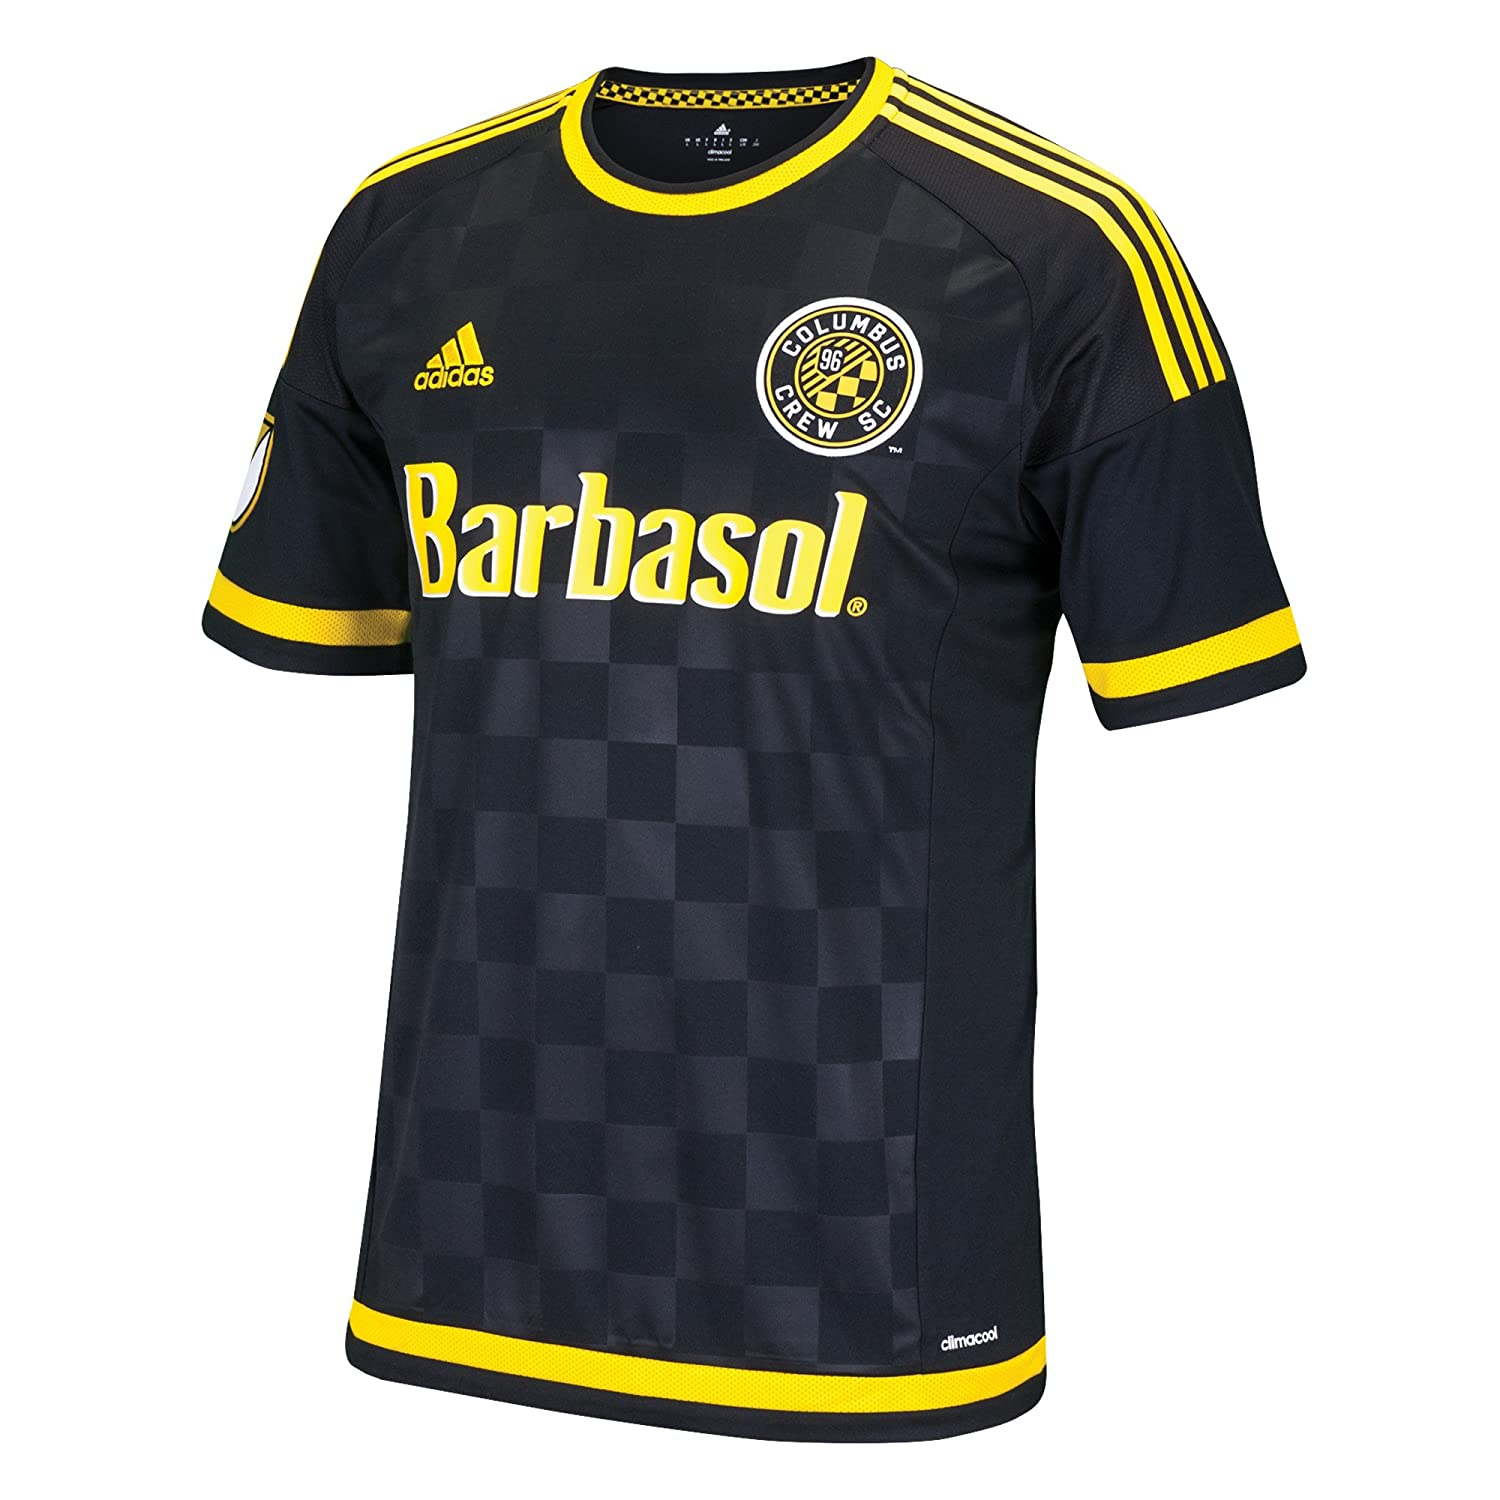 Adidas MLS da Uomo Manica Corta Corta Corta Replica Team Jersey, Uomo, 7417A, Nero, S | Export